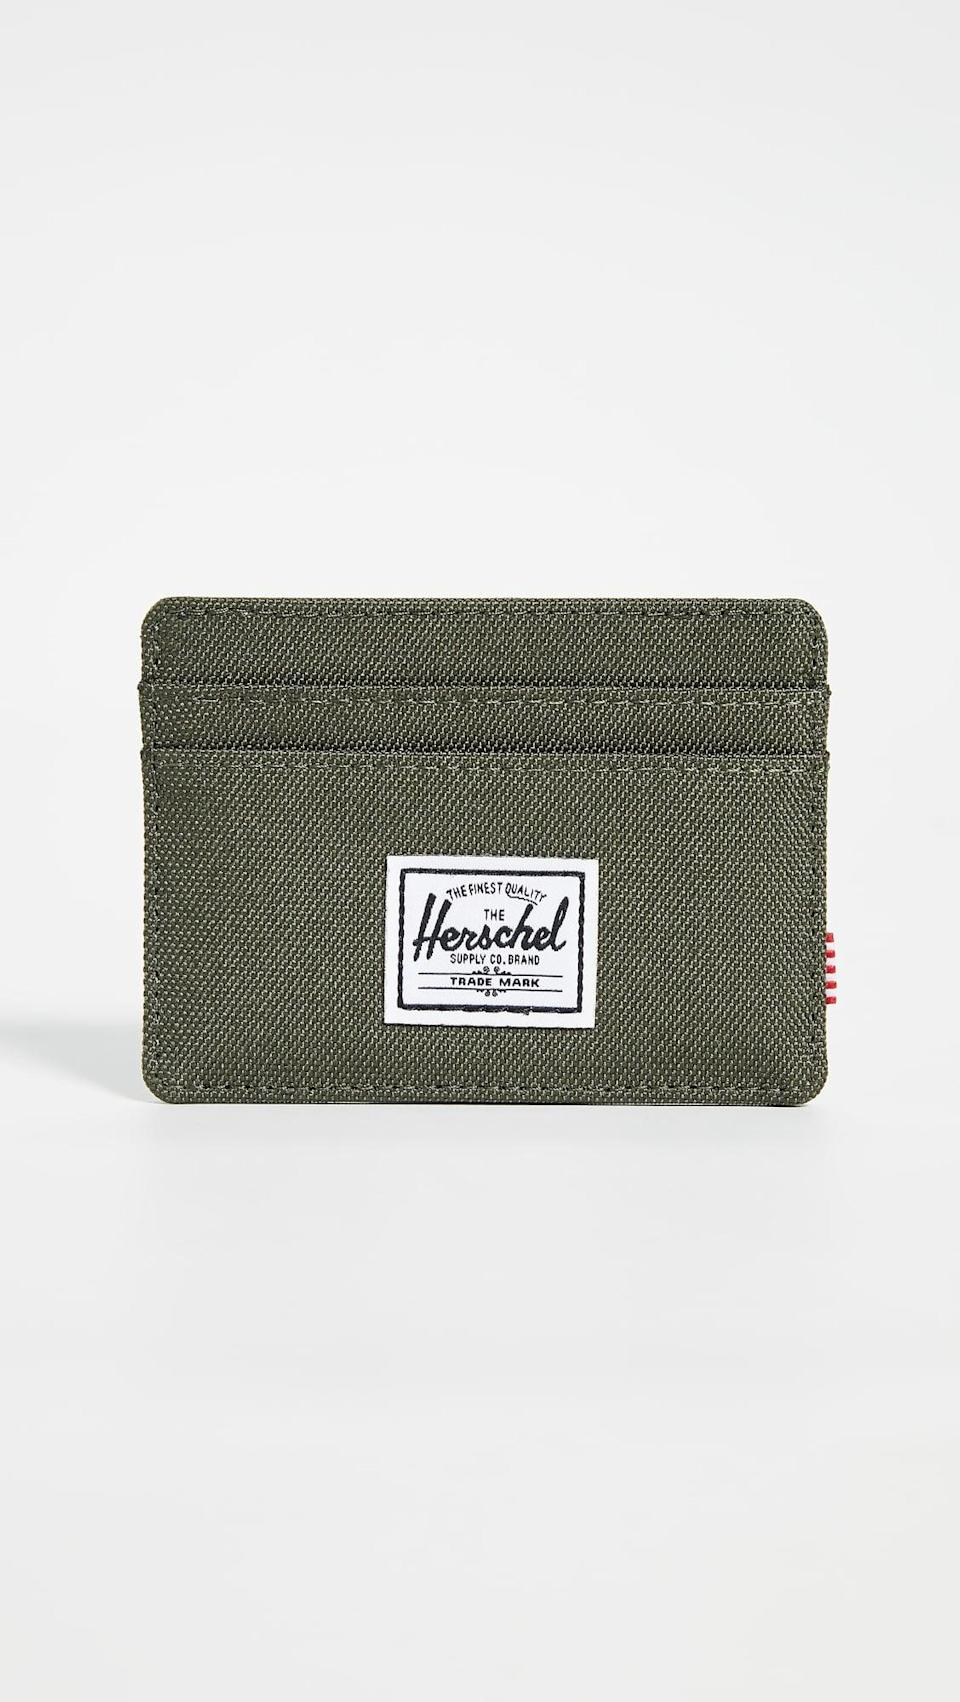 <p>Upgrade his old wallet to this <span>Herschel Supply Co. Charlie Card Case</span> ($22).</p>